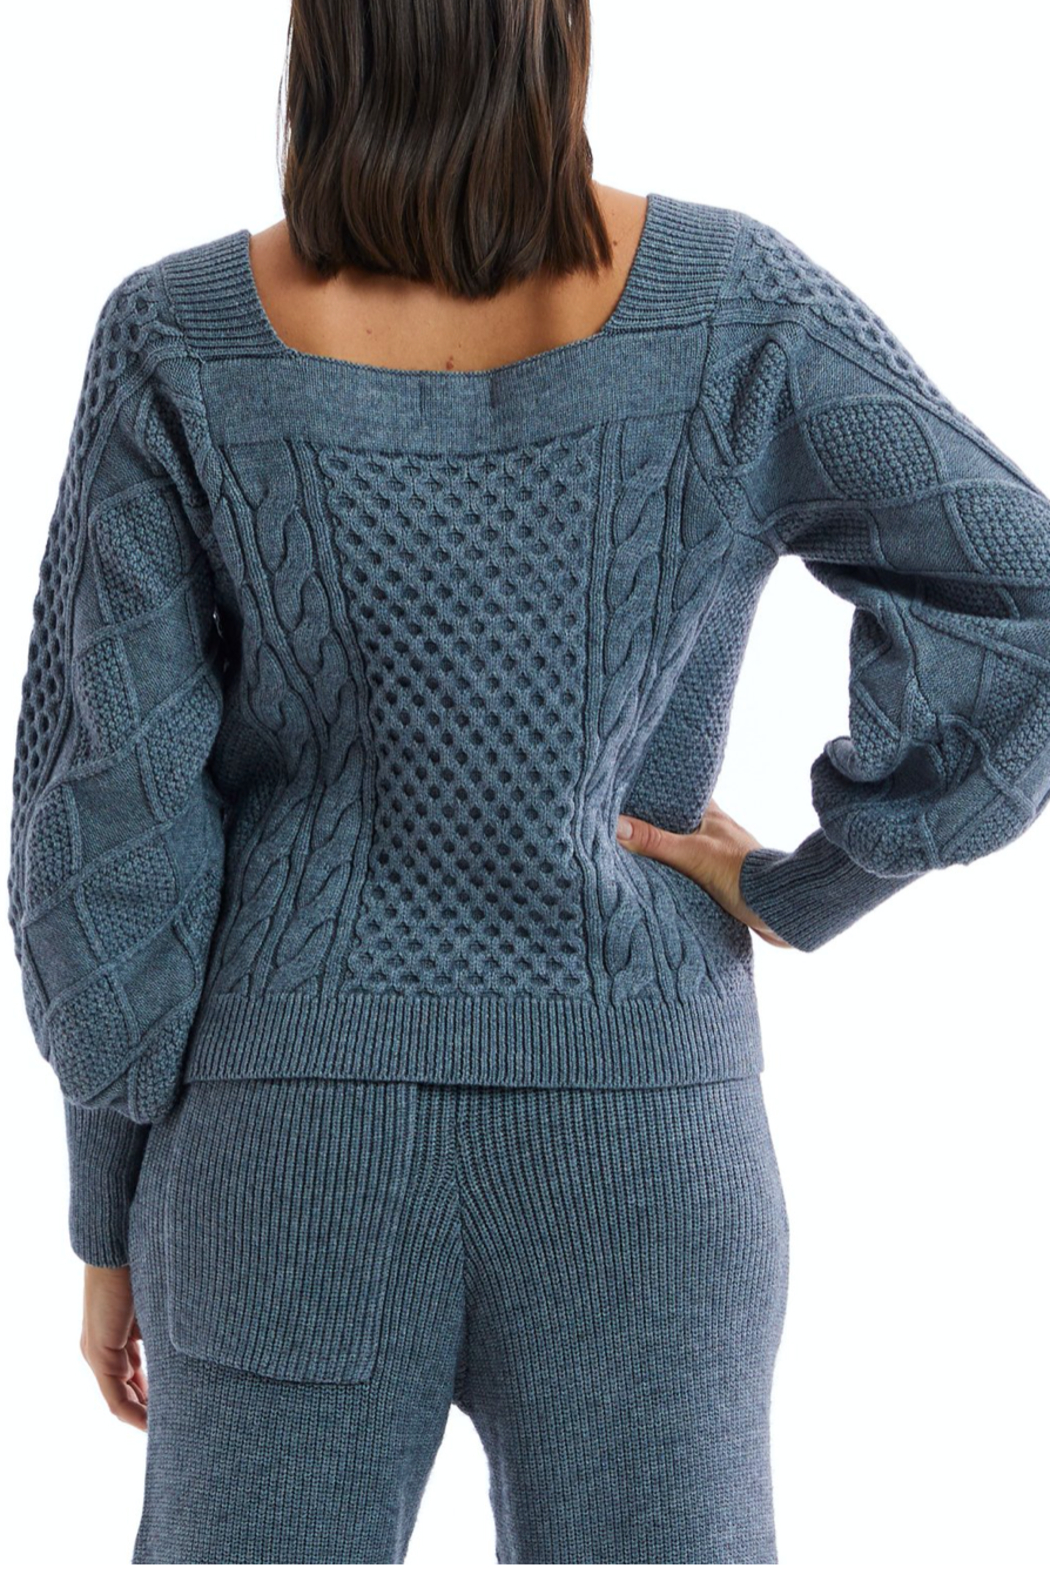 Allison Collection Square Neck Cable Knit Sweater - Side Cropped Image